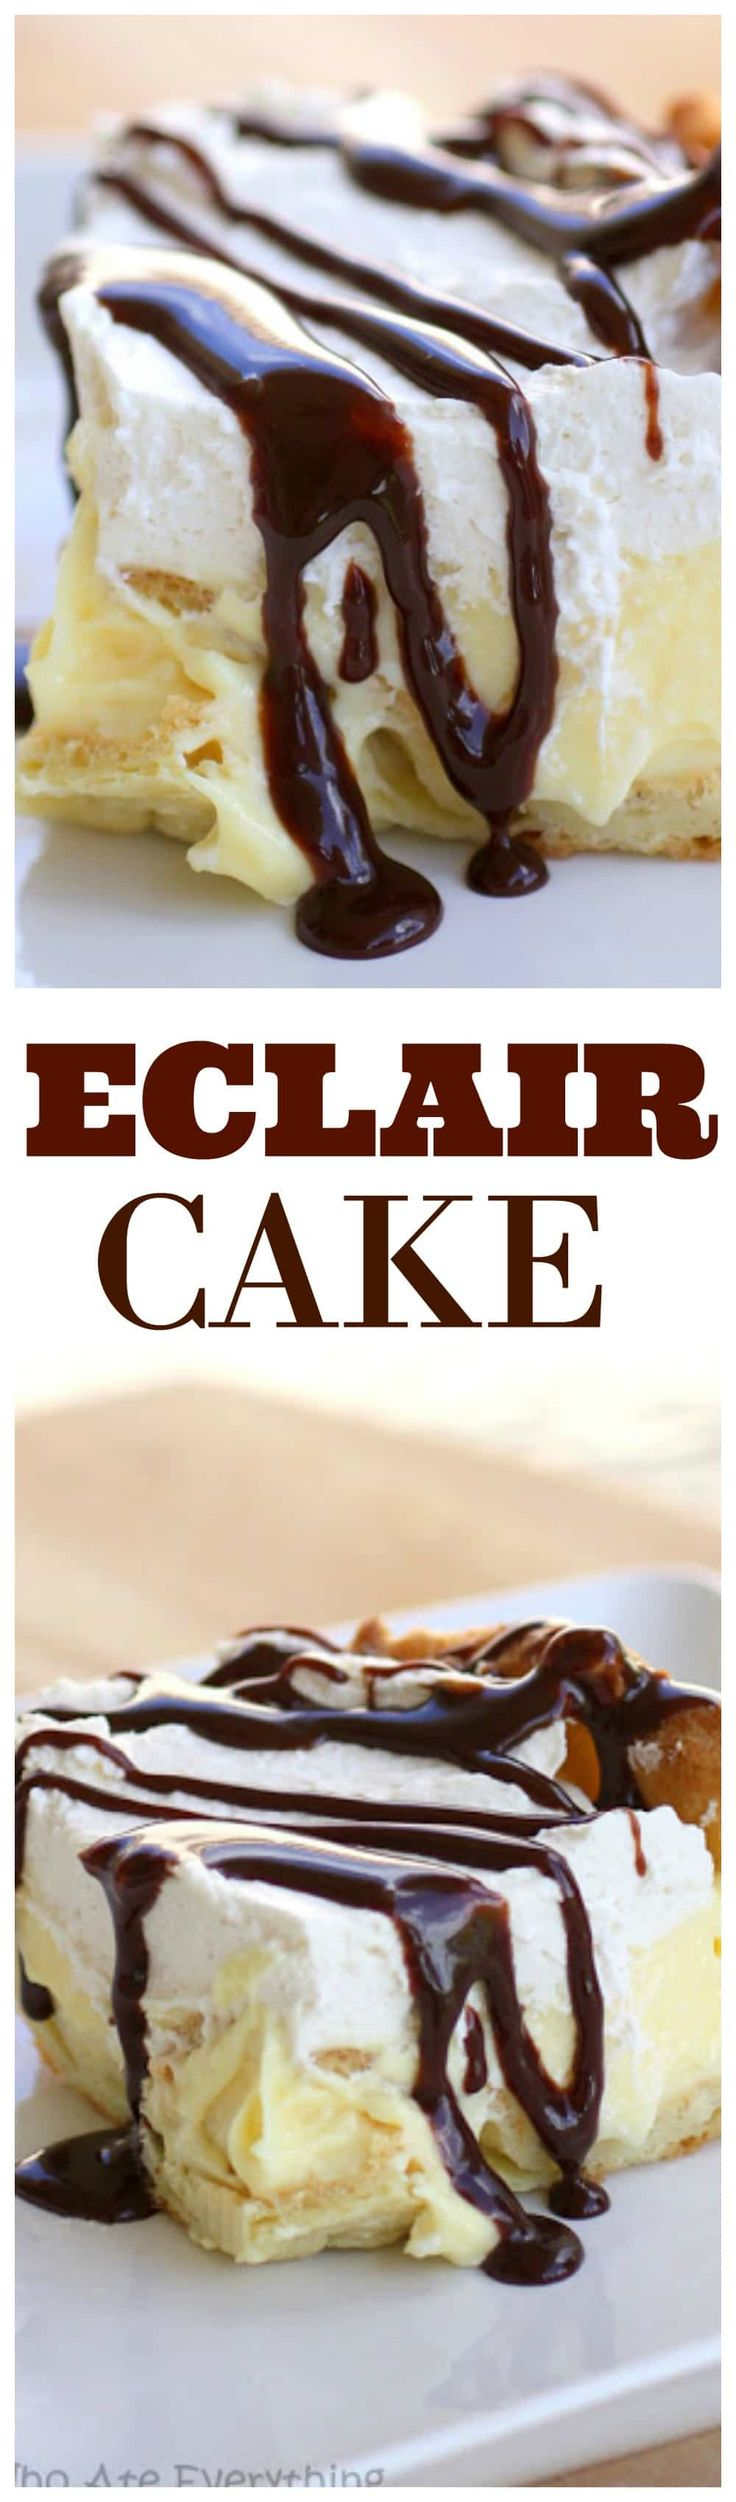 This Eclair Cake has a cream puff crust, vanilla cream cheese layer, whipped cream, and a chocolate drizzle. It's all the flavors of an eclair in cake form. the-girl-who-ate-everything.com